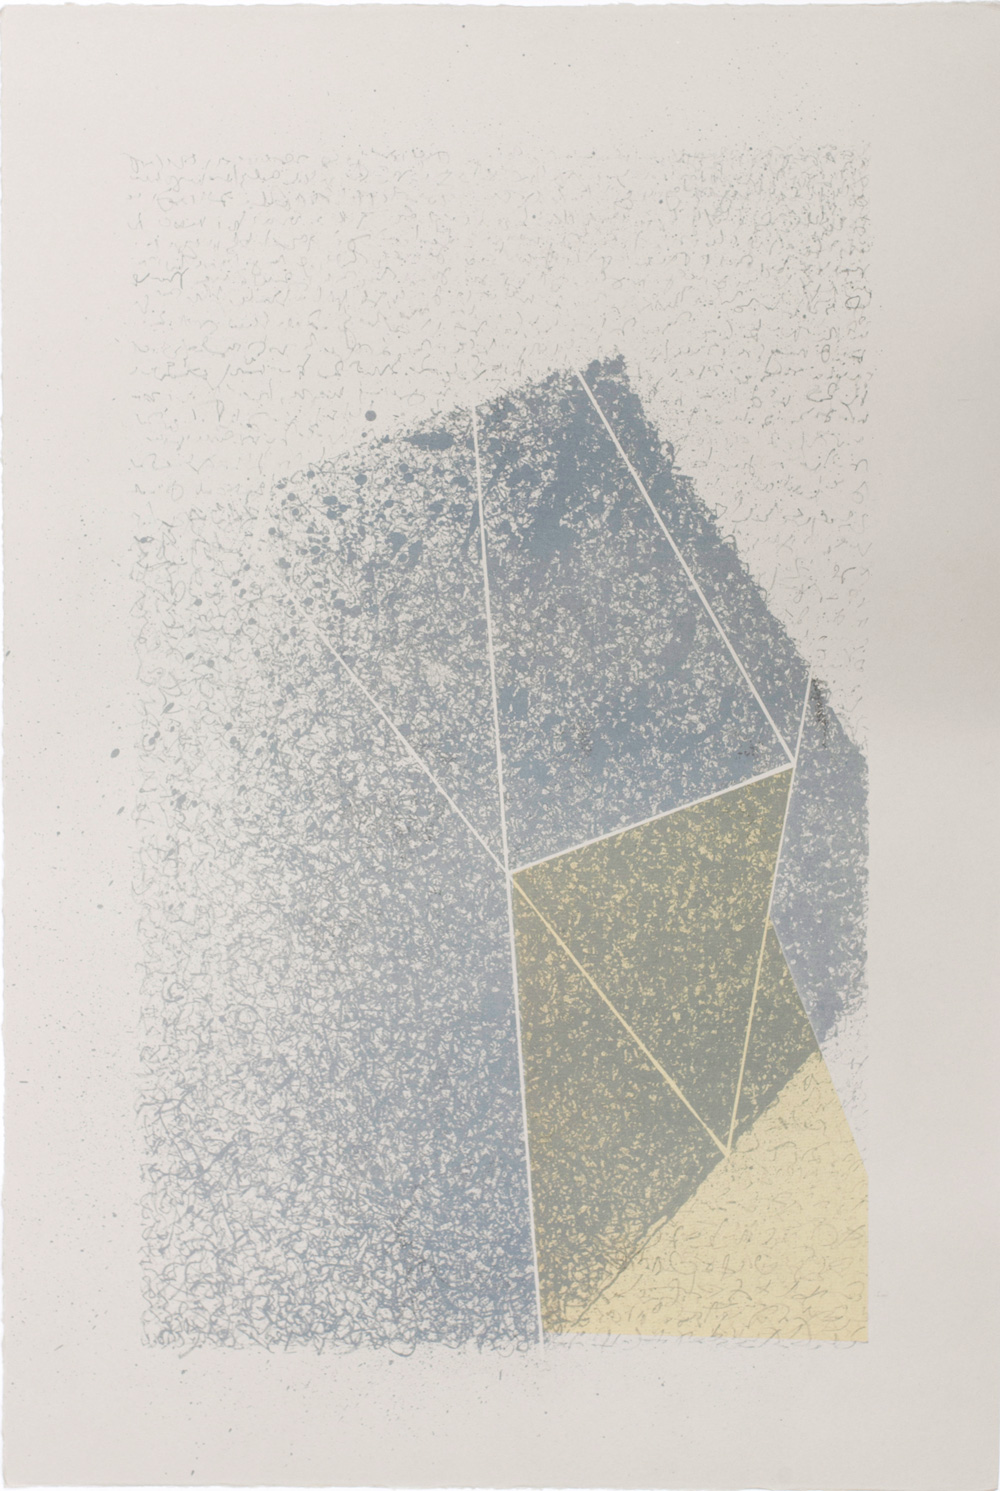 Albuquerque Colour Square 2015, Lithograph, 50 x 35cm